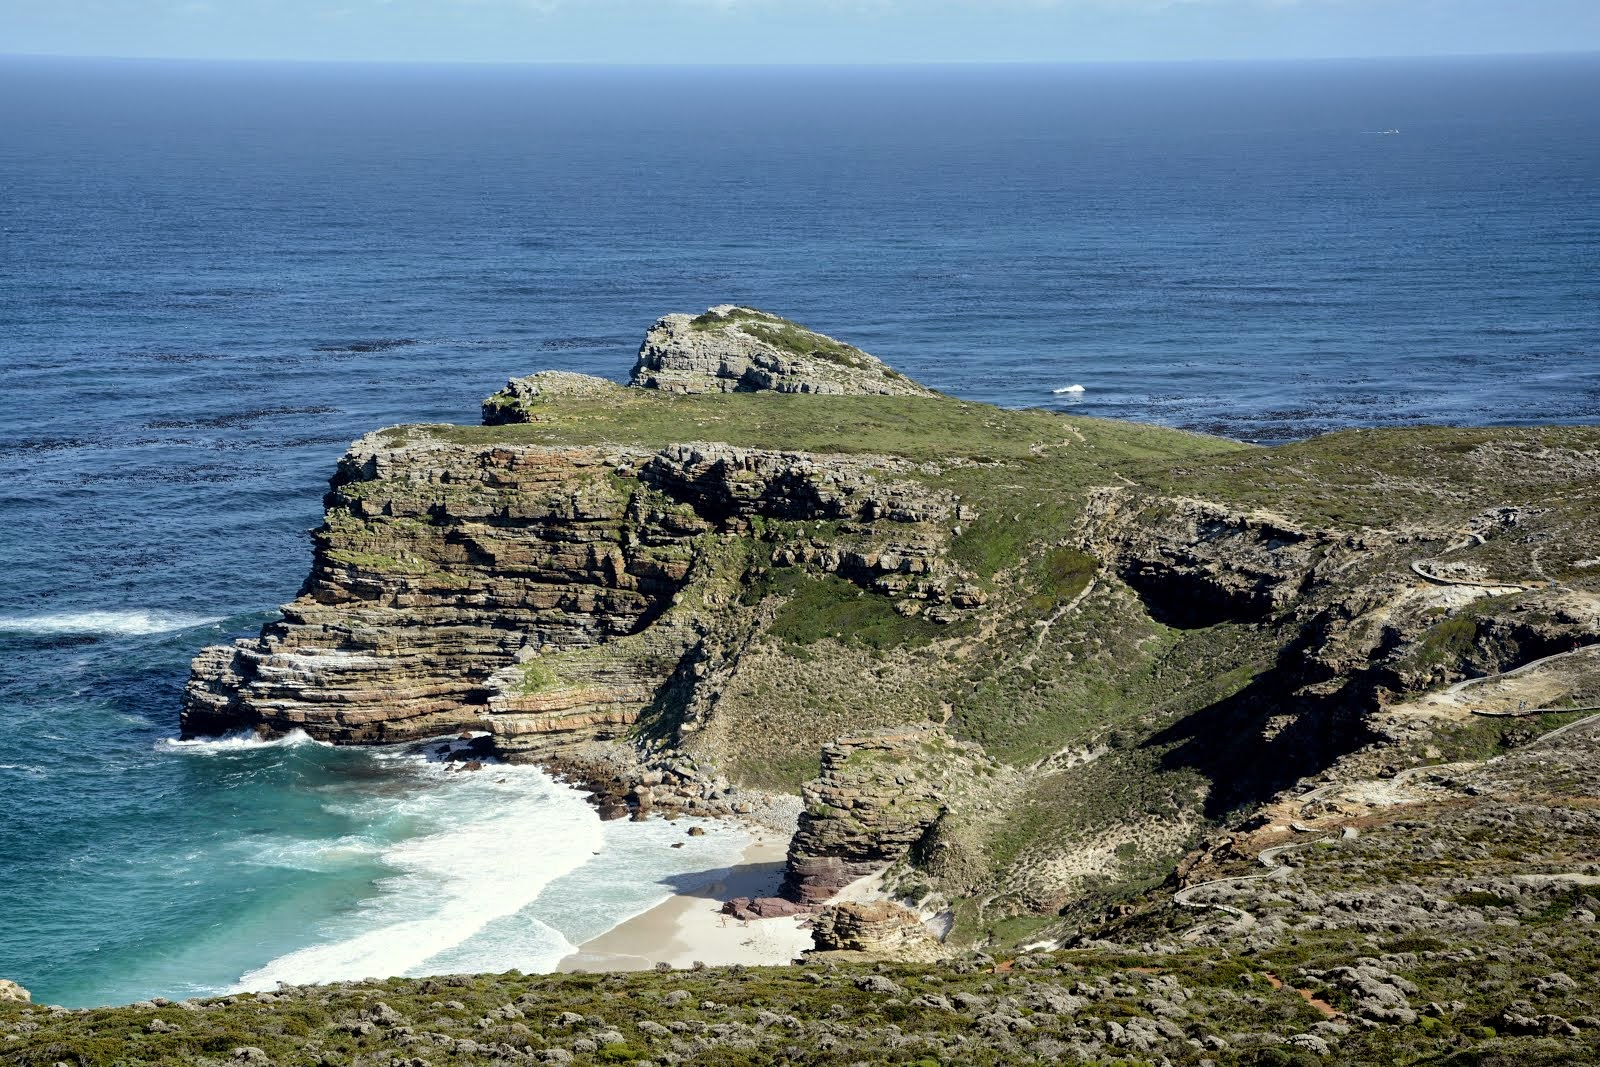 Cape of Good Hope, Western Cape, South Africa